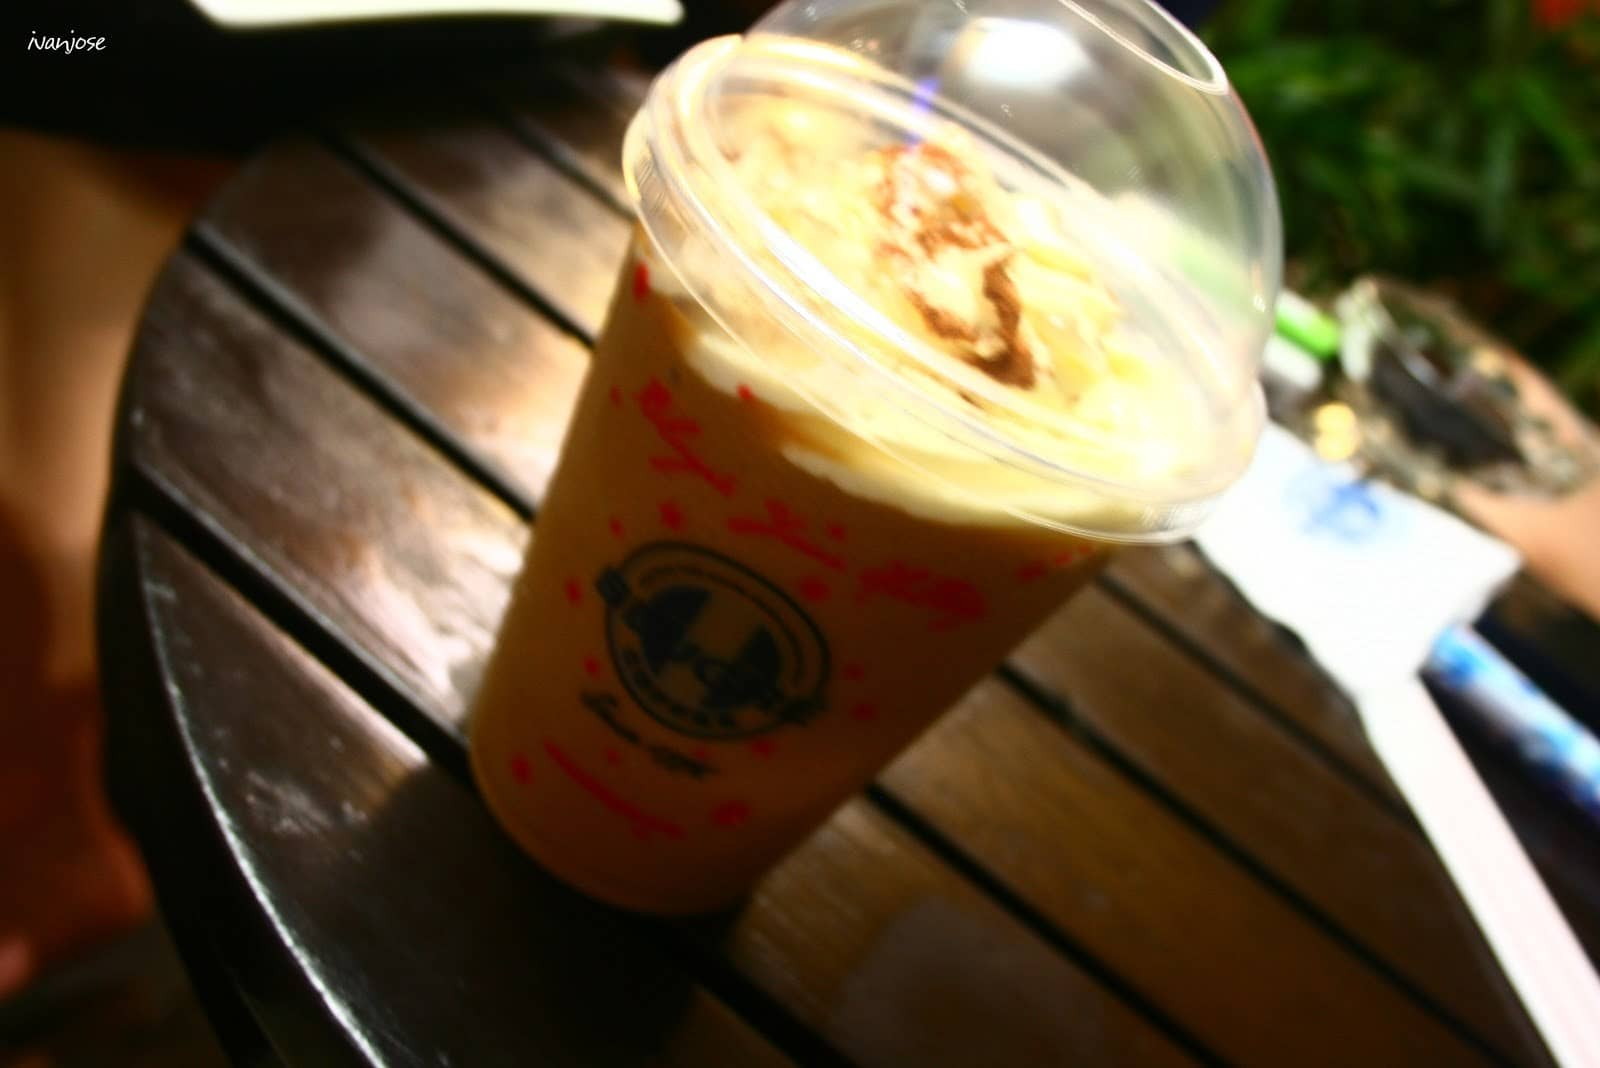 Durian coffee from Blugre Coffee in General Santos City, Mindanao